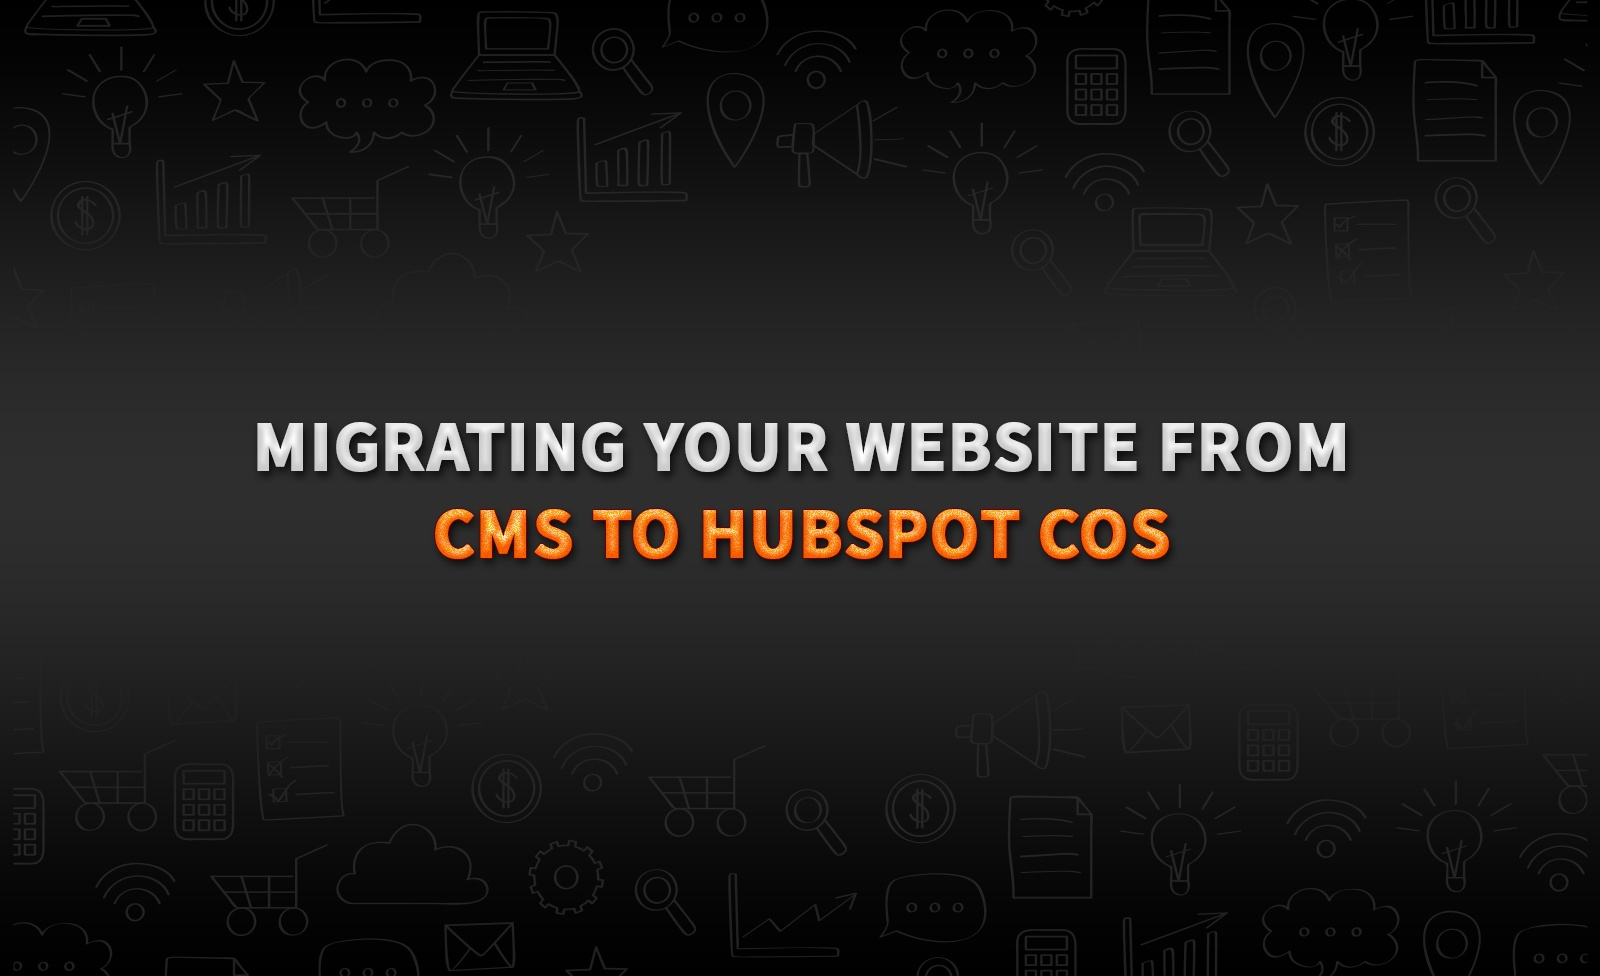 Migrating your website from CMS to Hubspot COS